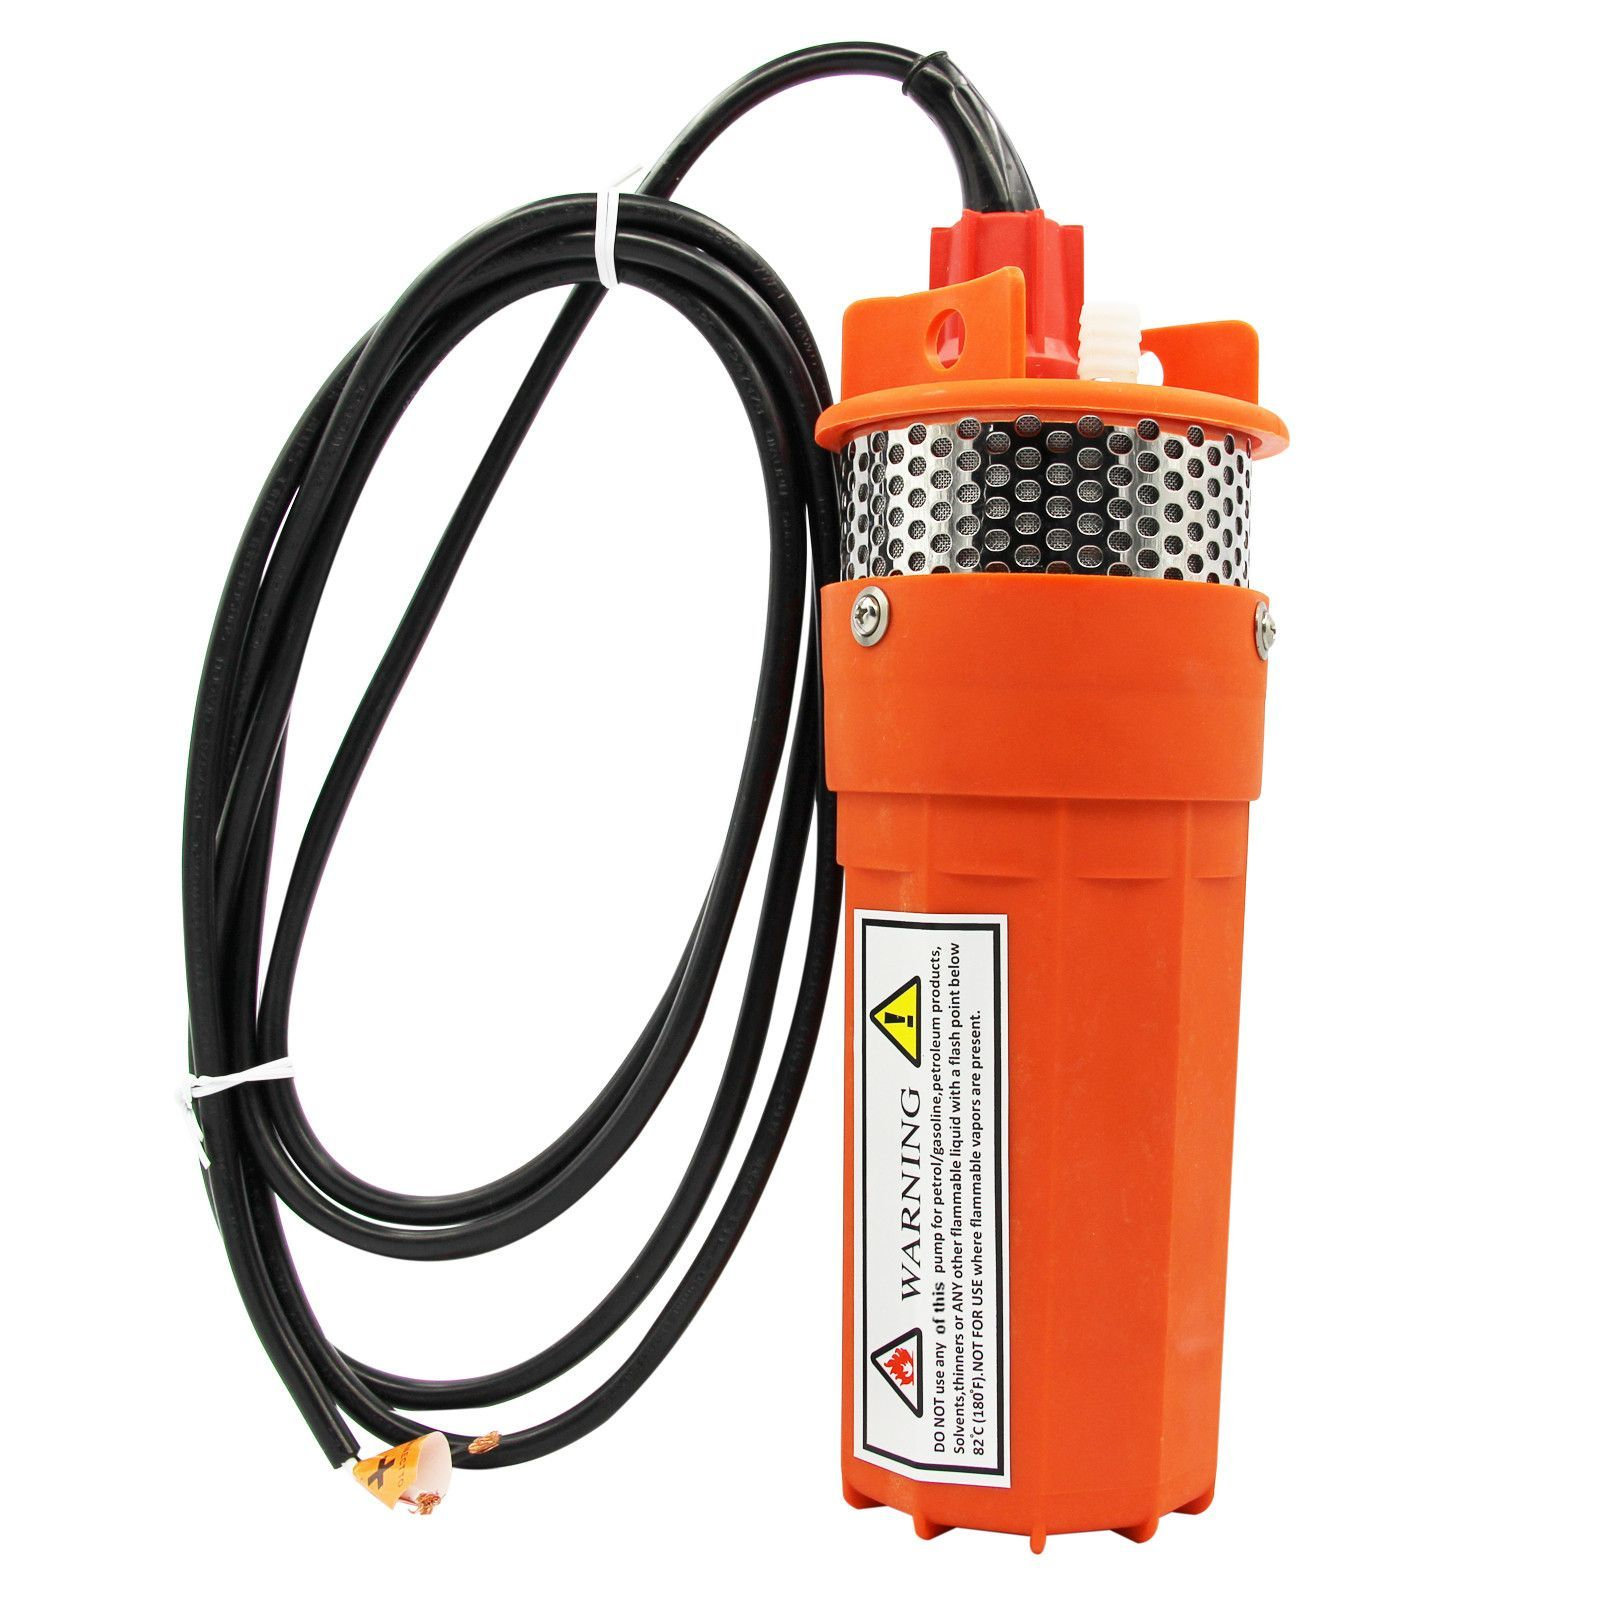 12v 24v Farm Ranch Submersible Deep Well Dc Solar Water Pump Battery Solar Water Pump Submersible Well Pump Well Pump